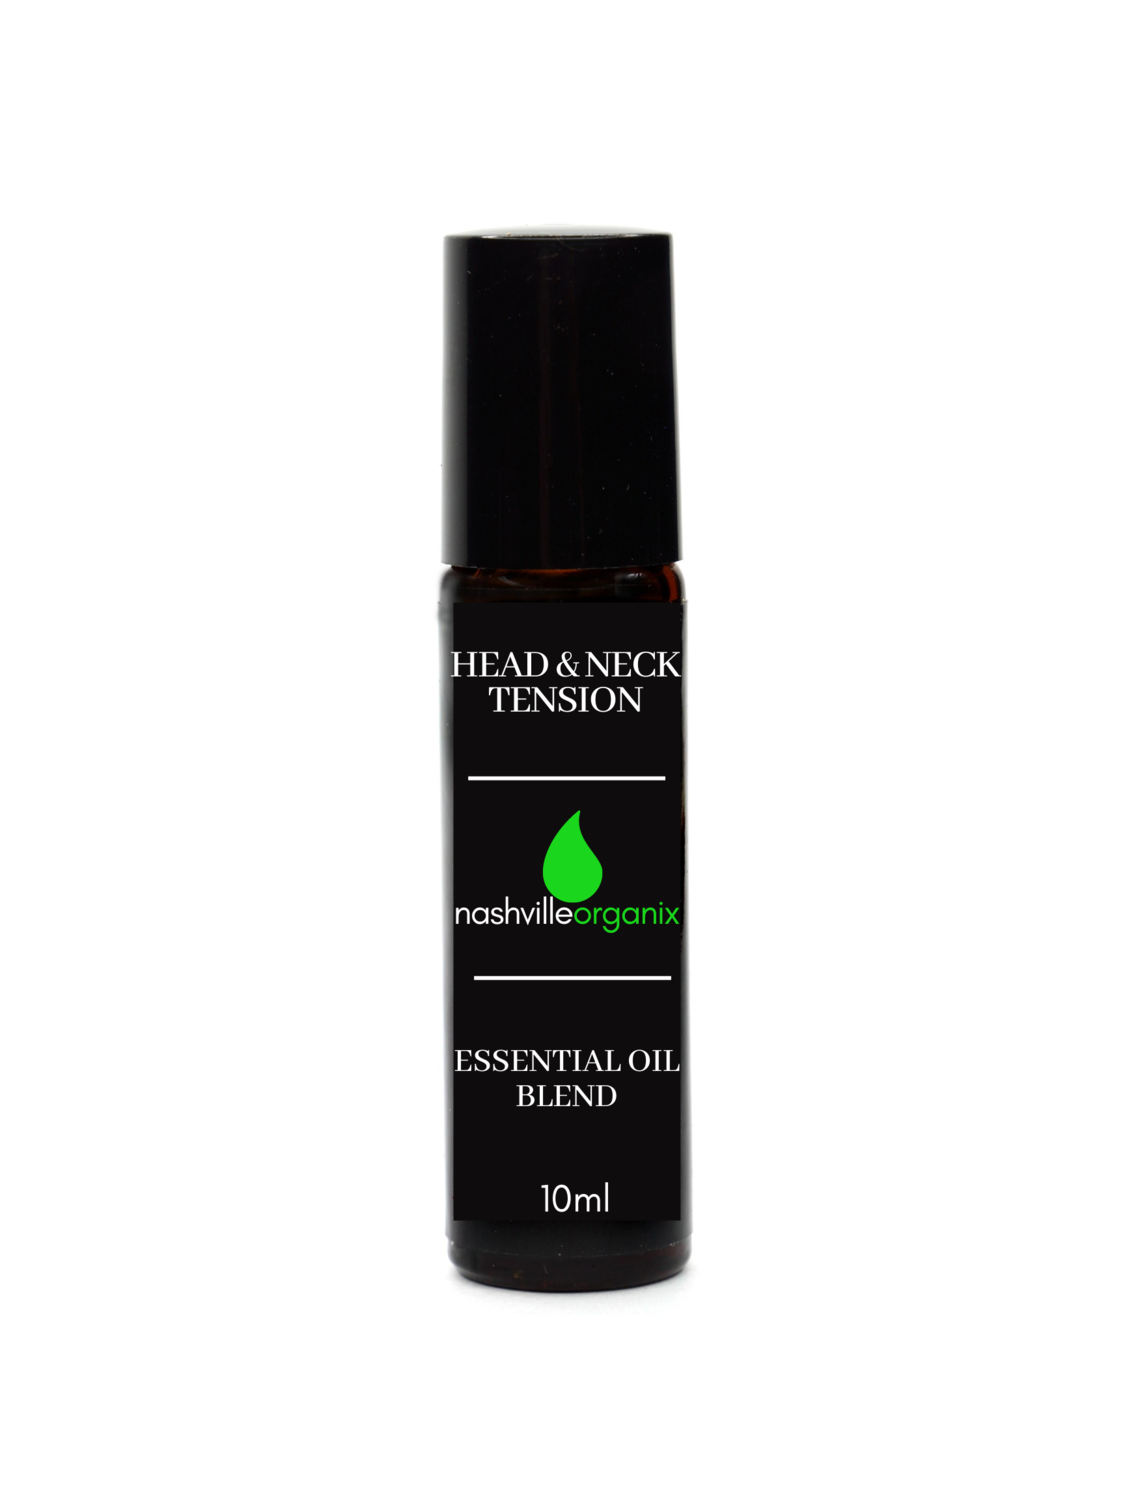 Head and Neck Tension Blend